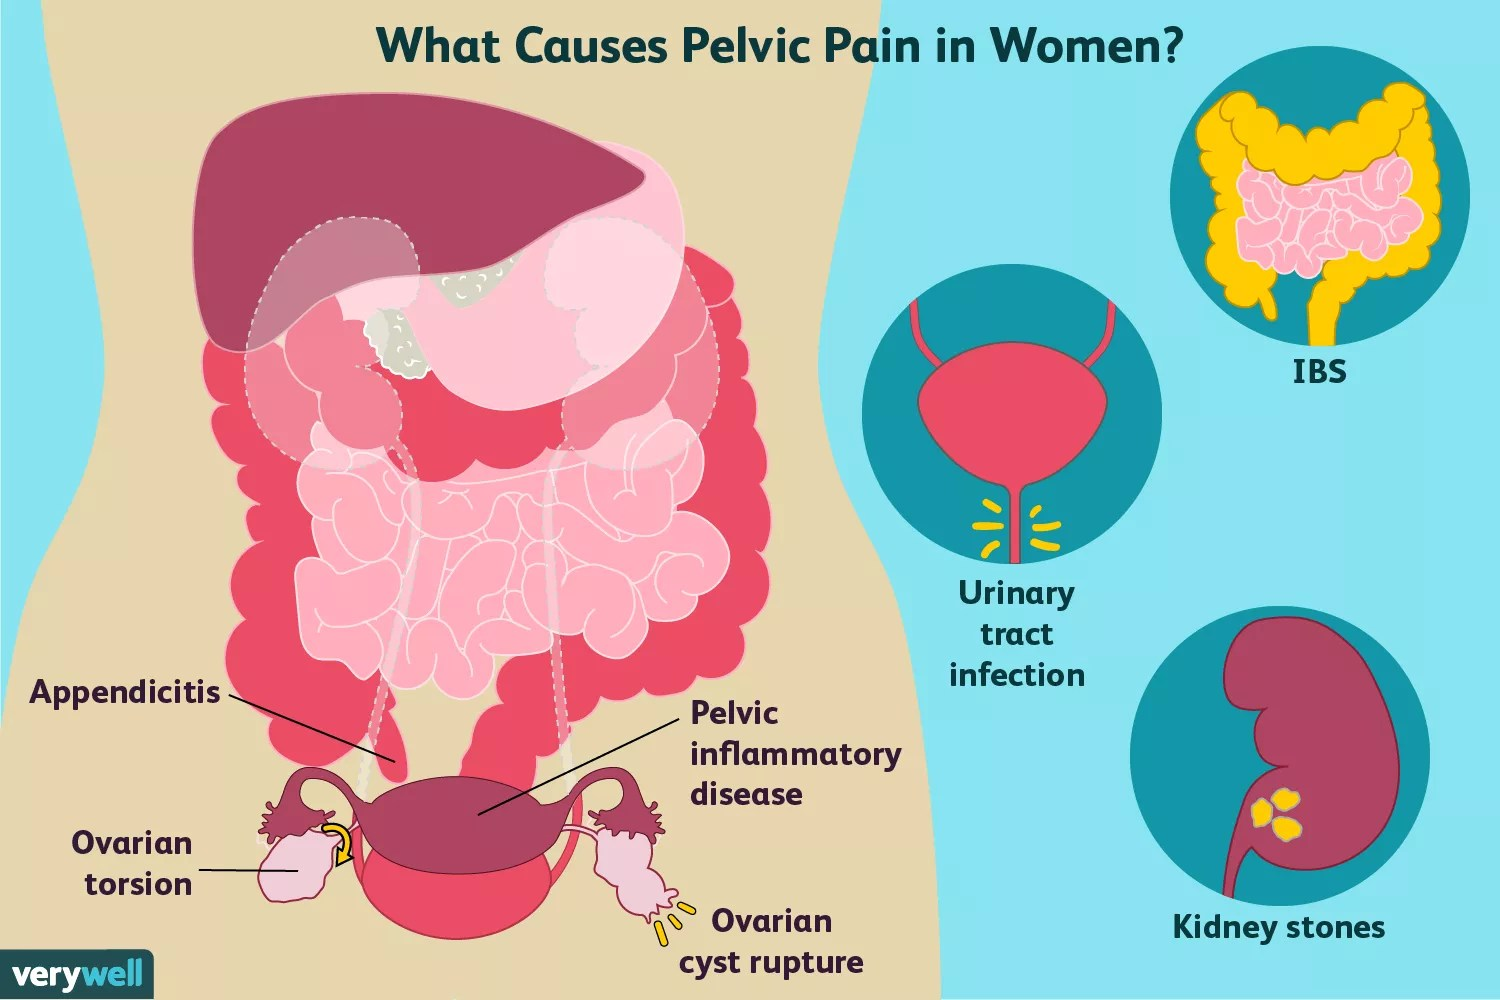 causes of pelvic pain in women